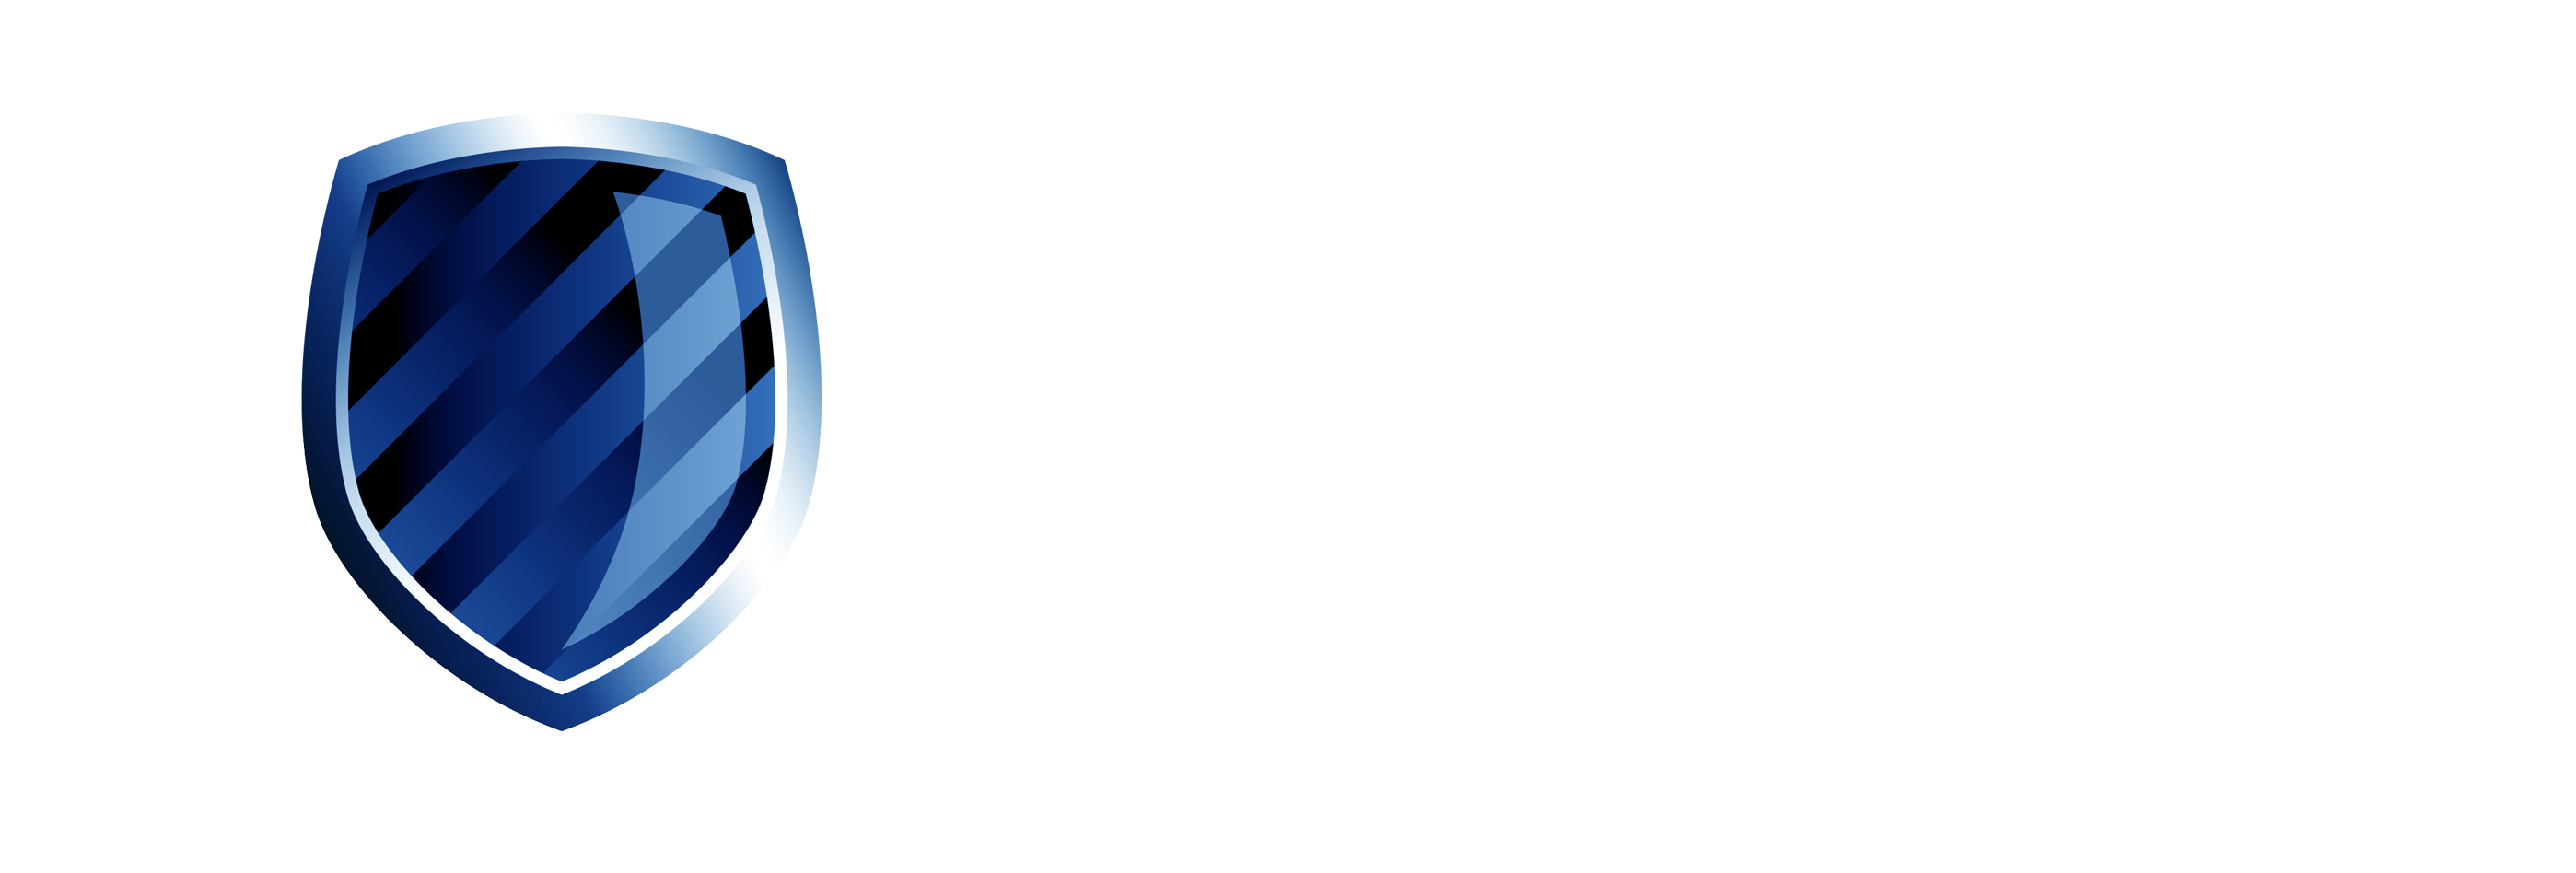 GŠ Security Logo